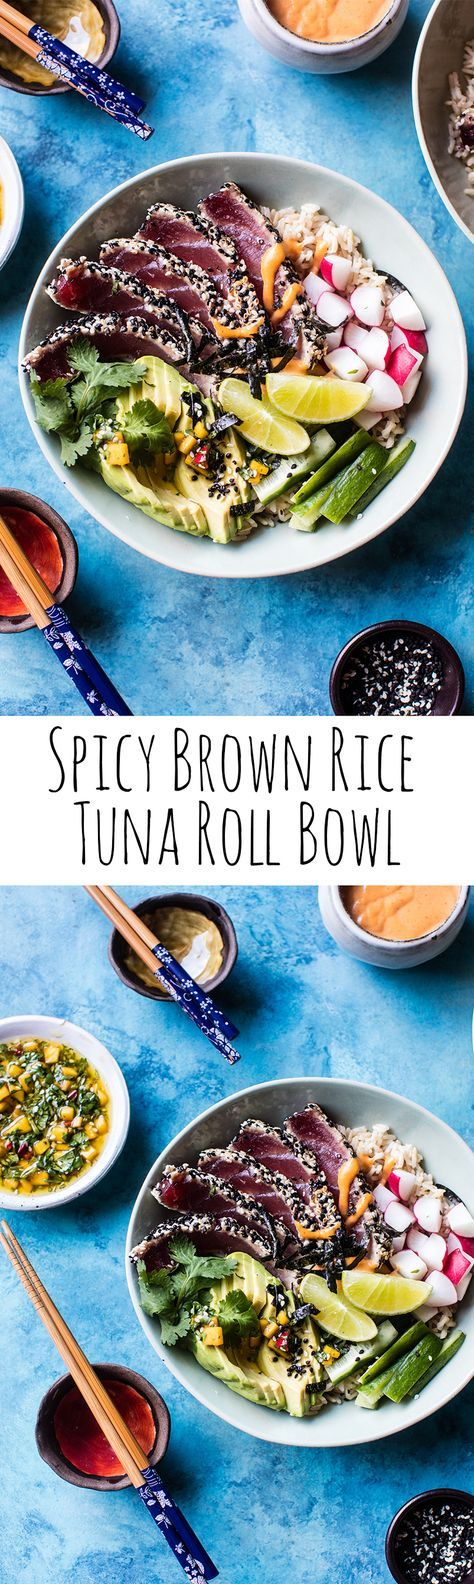 Spicy Brown Rice Seared Tuna Roll Bowl | http://halfbakedharvest.com @hbharvest